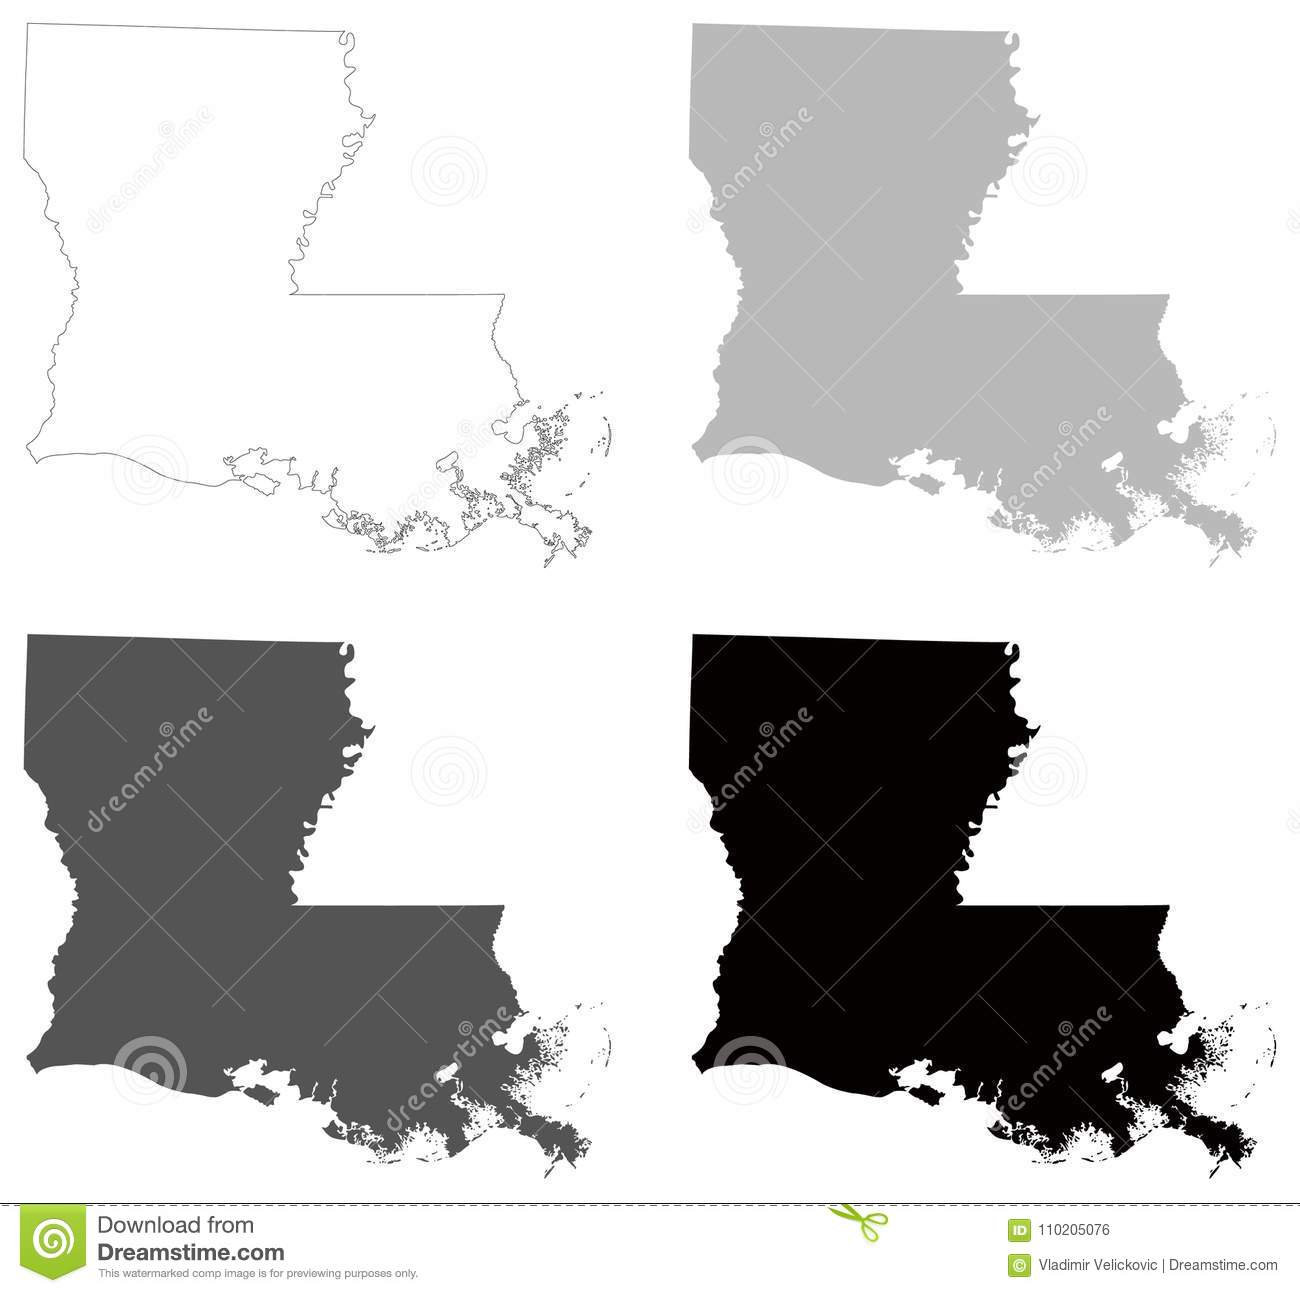 Louisiana Map - State In The Southeastern Region Of The ...